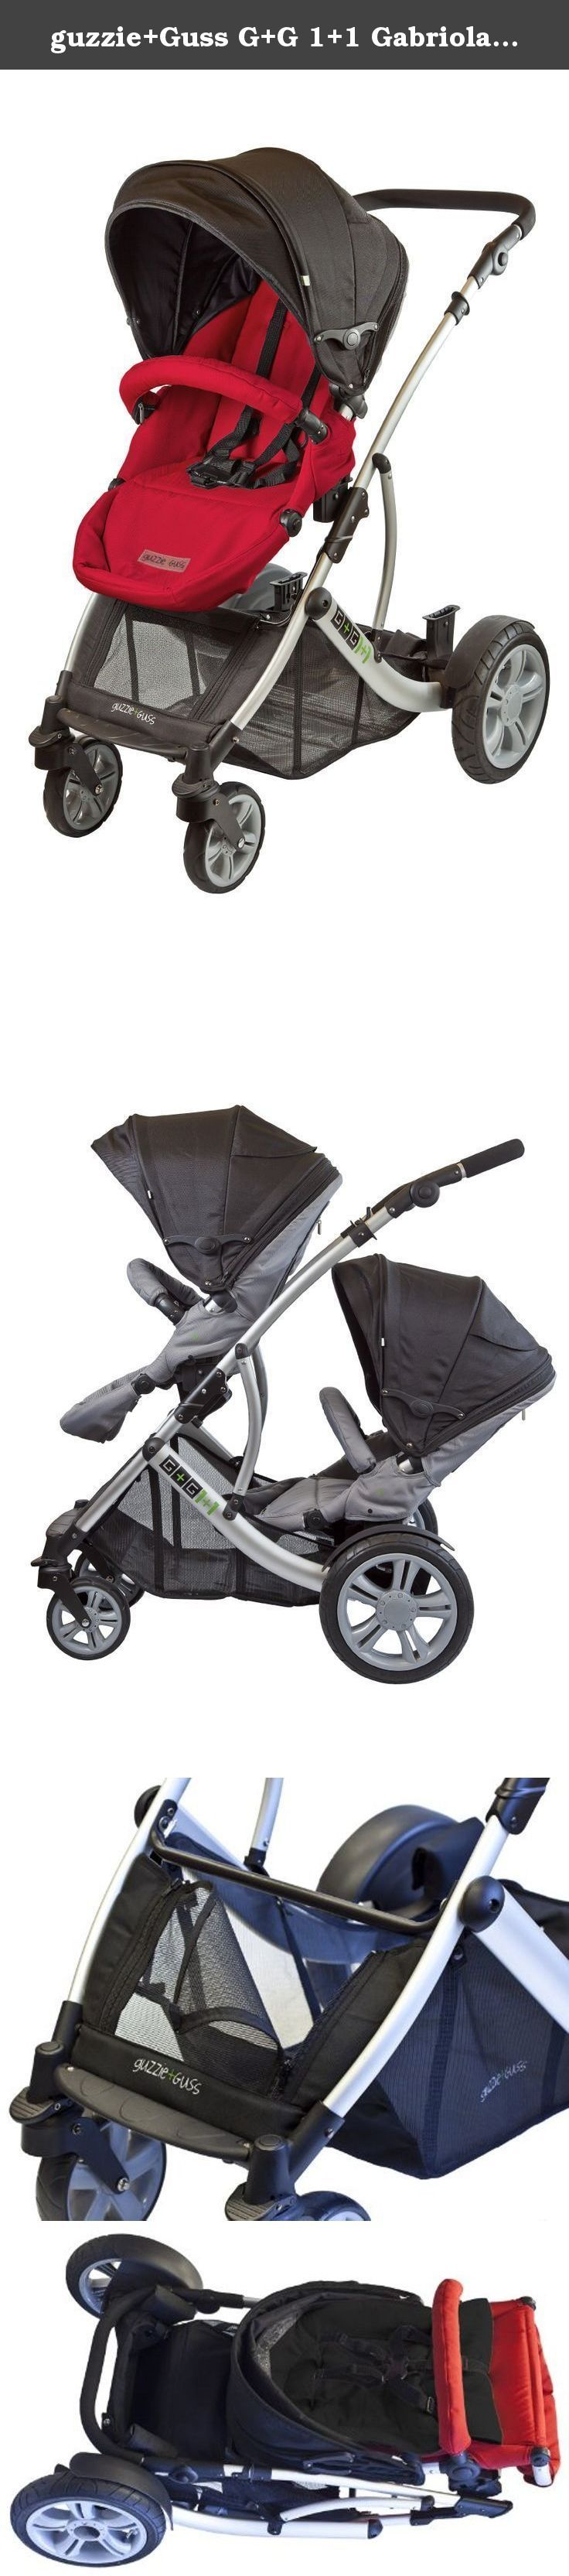 The G G 1 1 Gabriola Stroller is a versatile modular stroller that can convert from a travel system to a single or in line double stroller